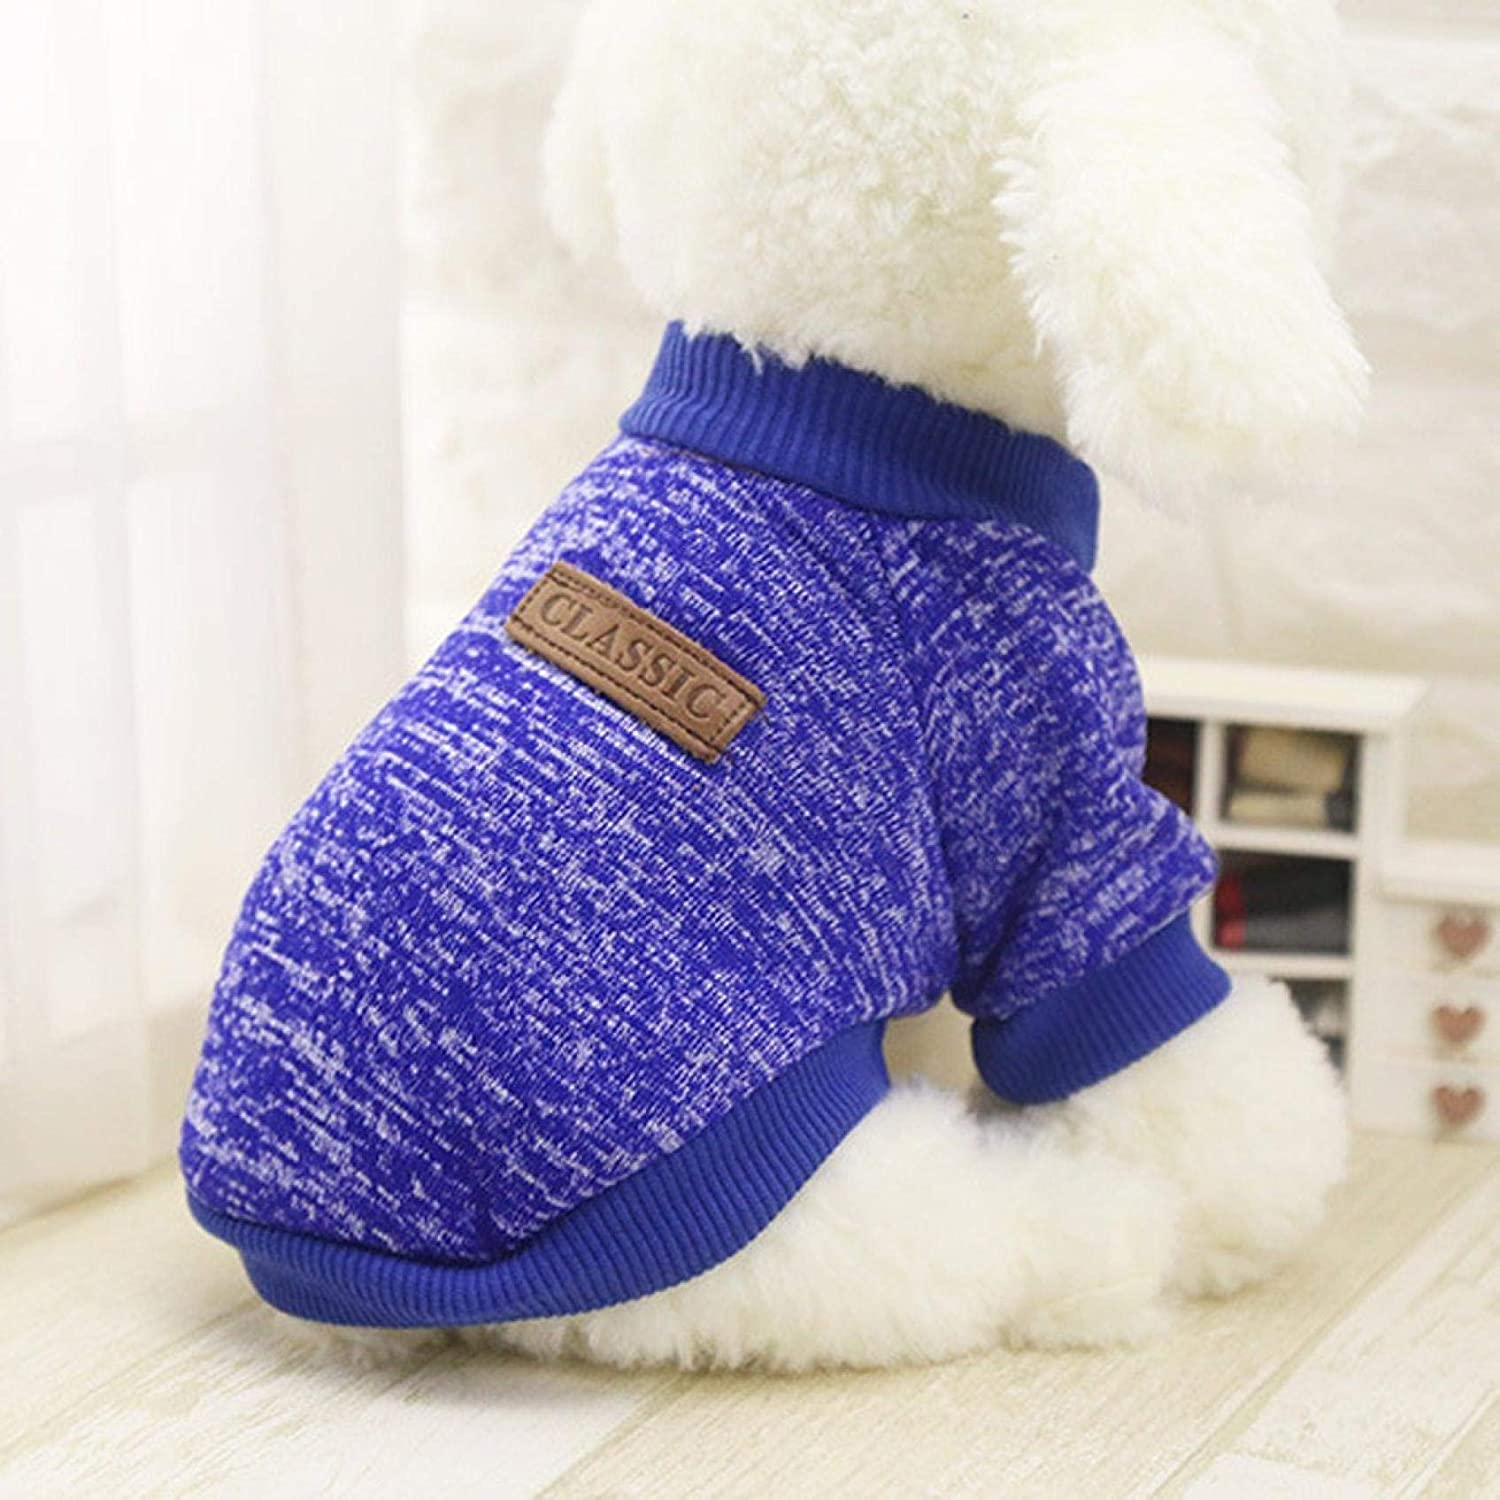 Kniskelop Pet Dog Sweater Warm Dog Pajamas Soft Cat Sweater Puppy Clothes Small Dogs Sweater Winter Doggie Sweatshirt